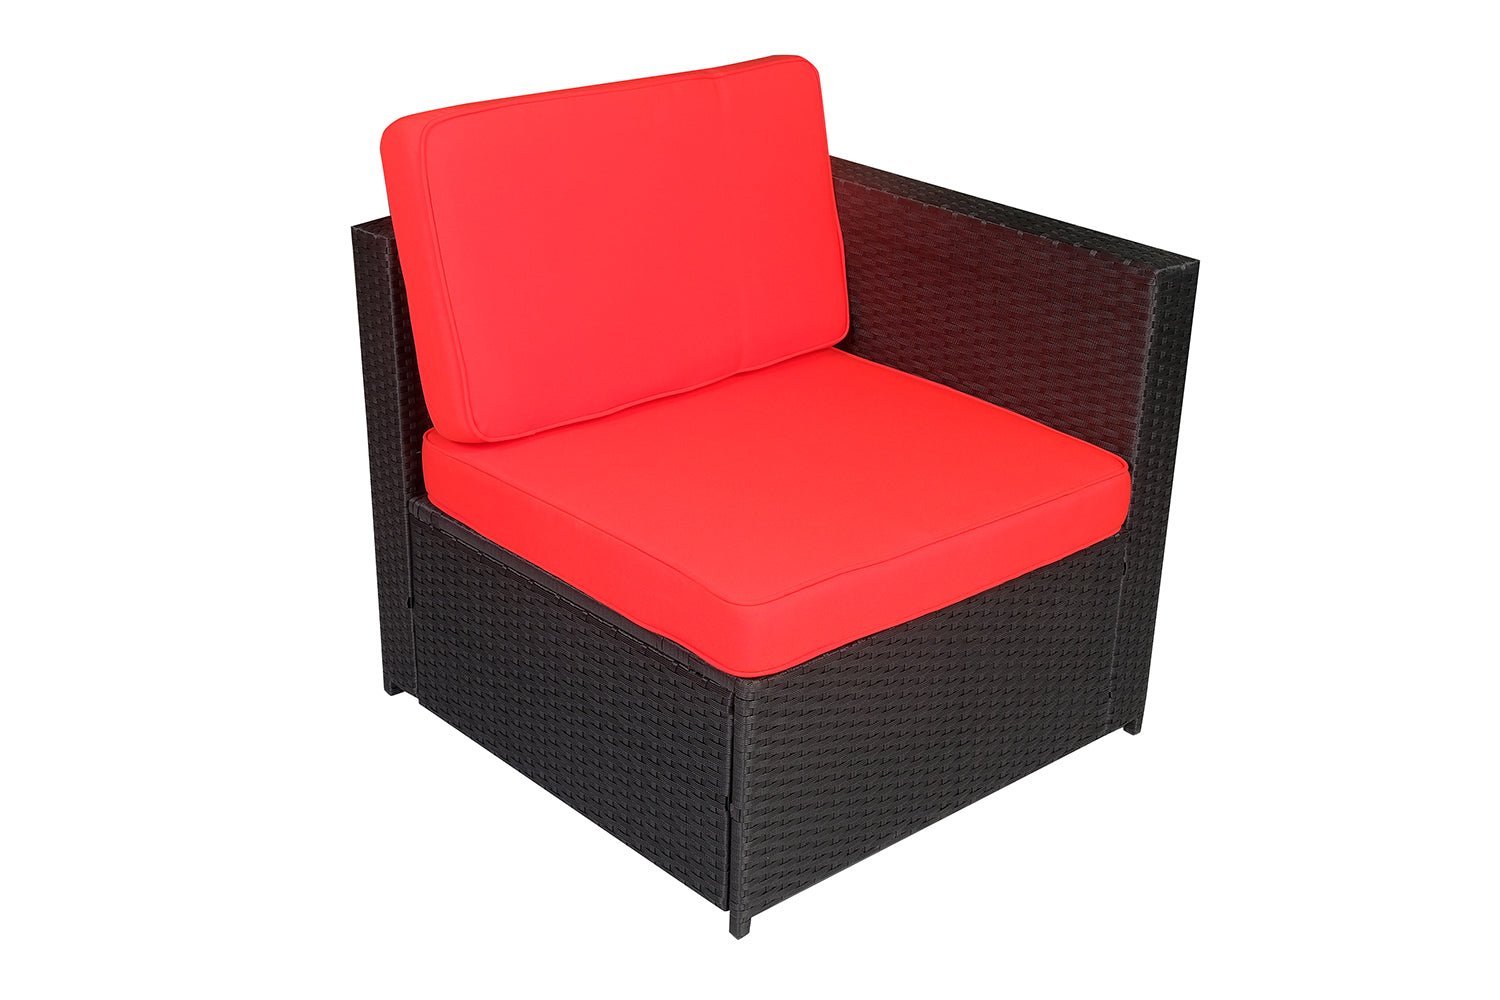 Outdoor Rattan Wicker Sofa Couch Patio Furniture Chair Garden Table With Cushion DIY